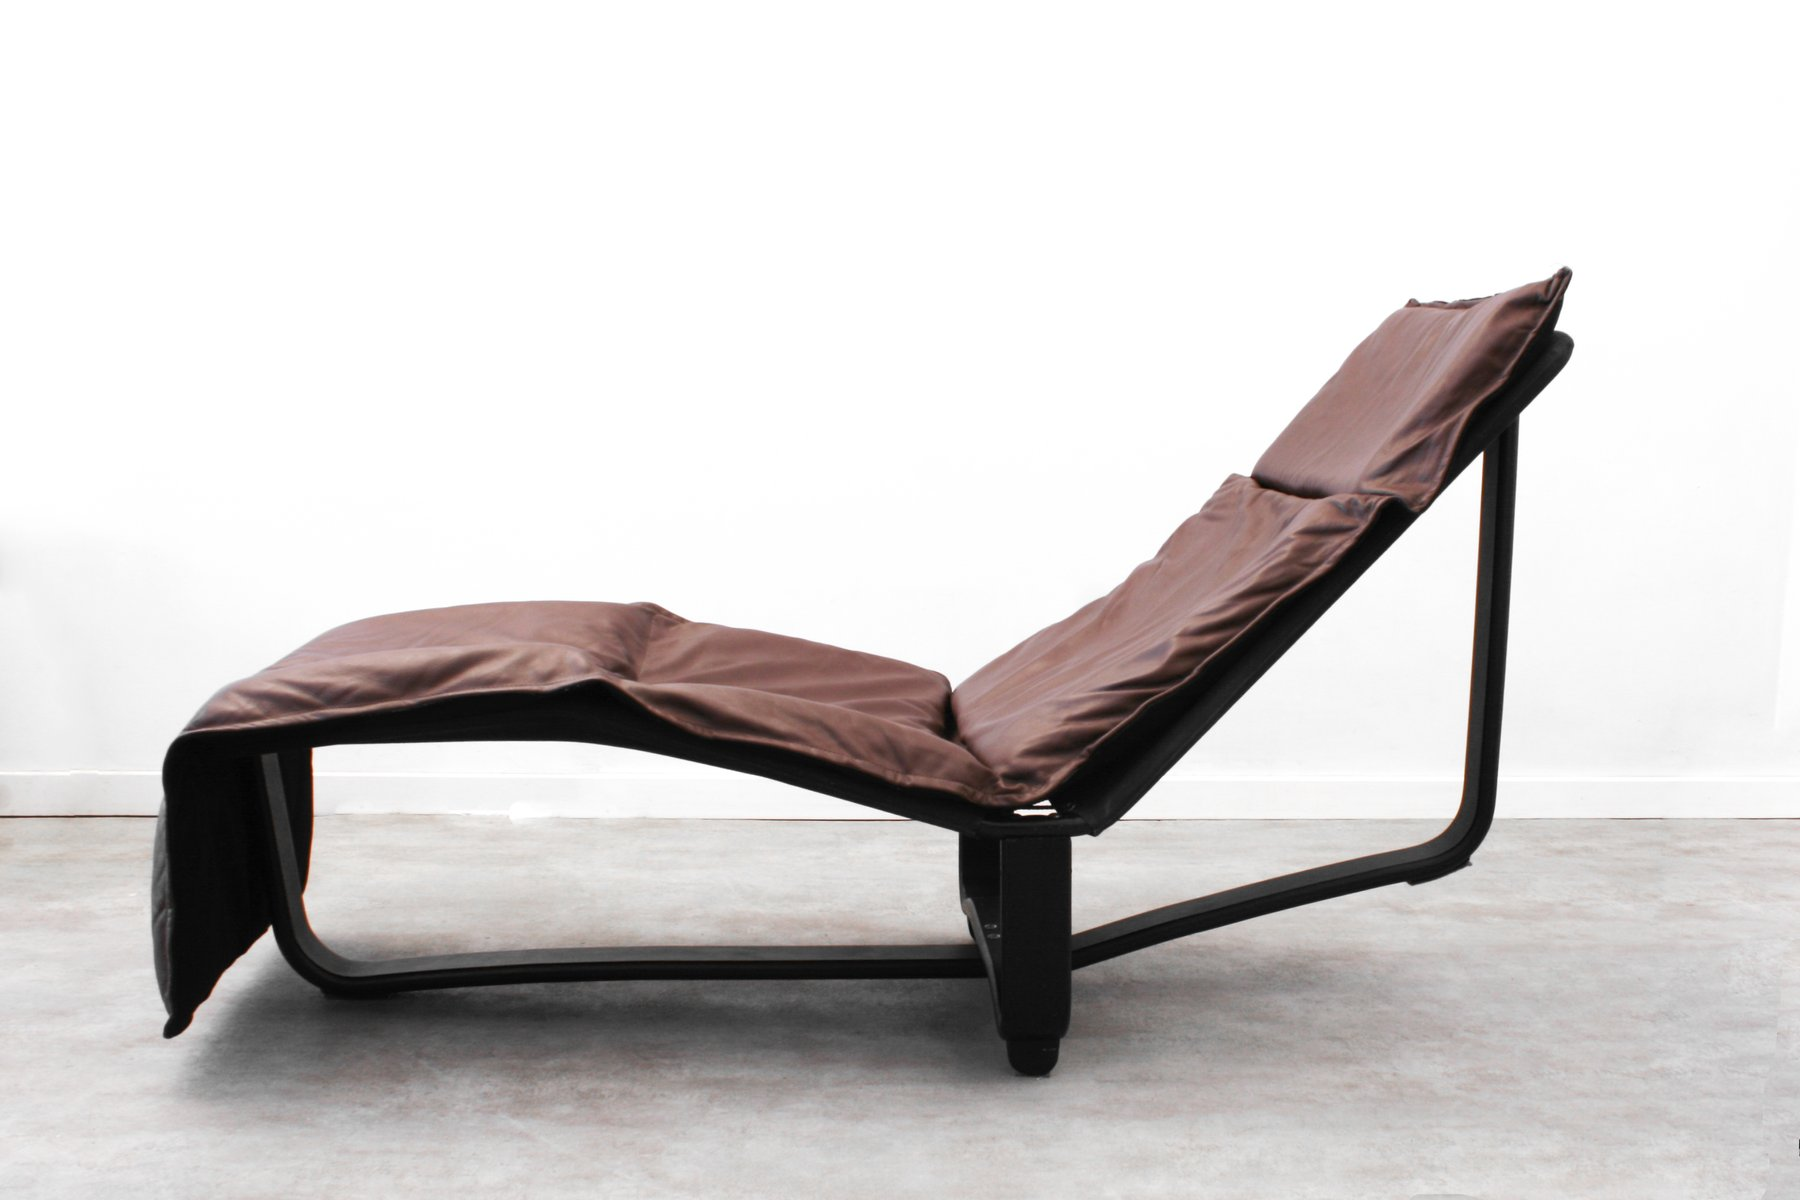 Chaise Longue Suisse Rest Chaise Longue By Ingmar And Knut Relling For Westnofa